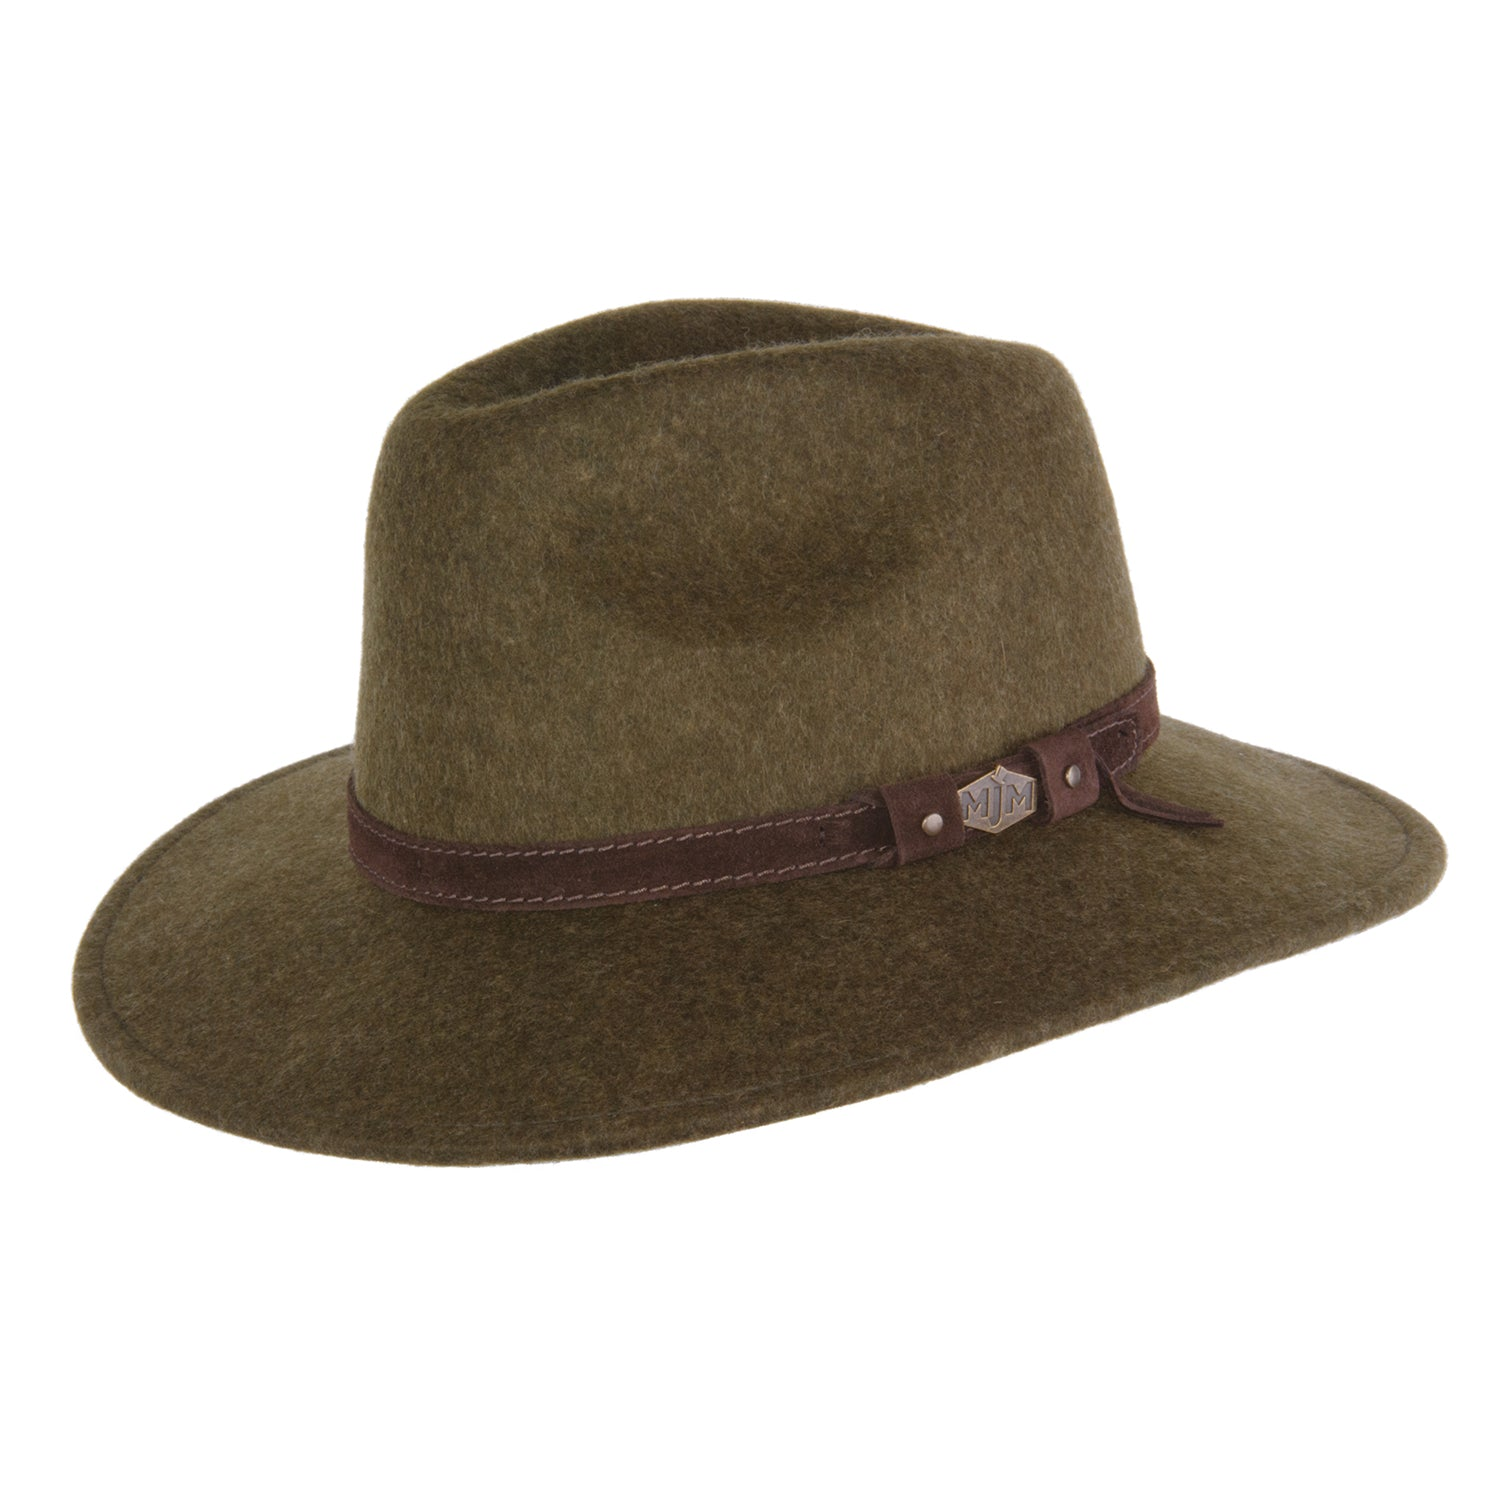 MJM Hats Aldo Wool Felt WR/CR